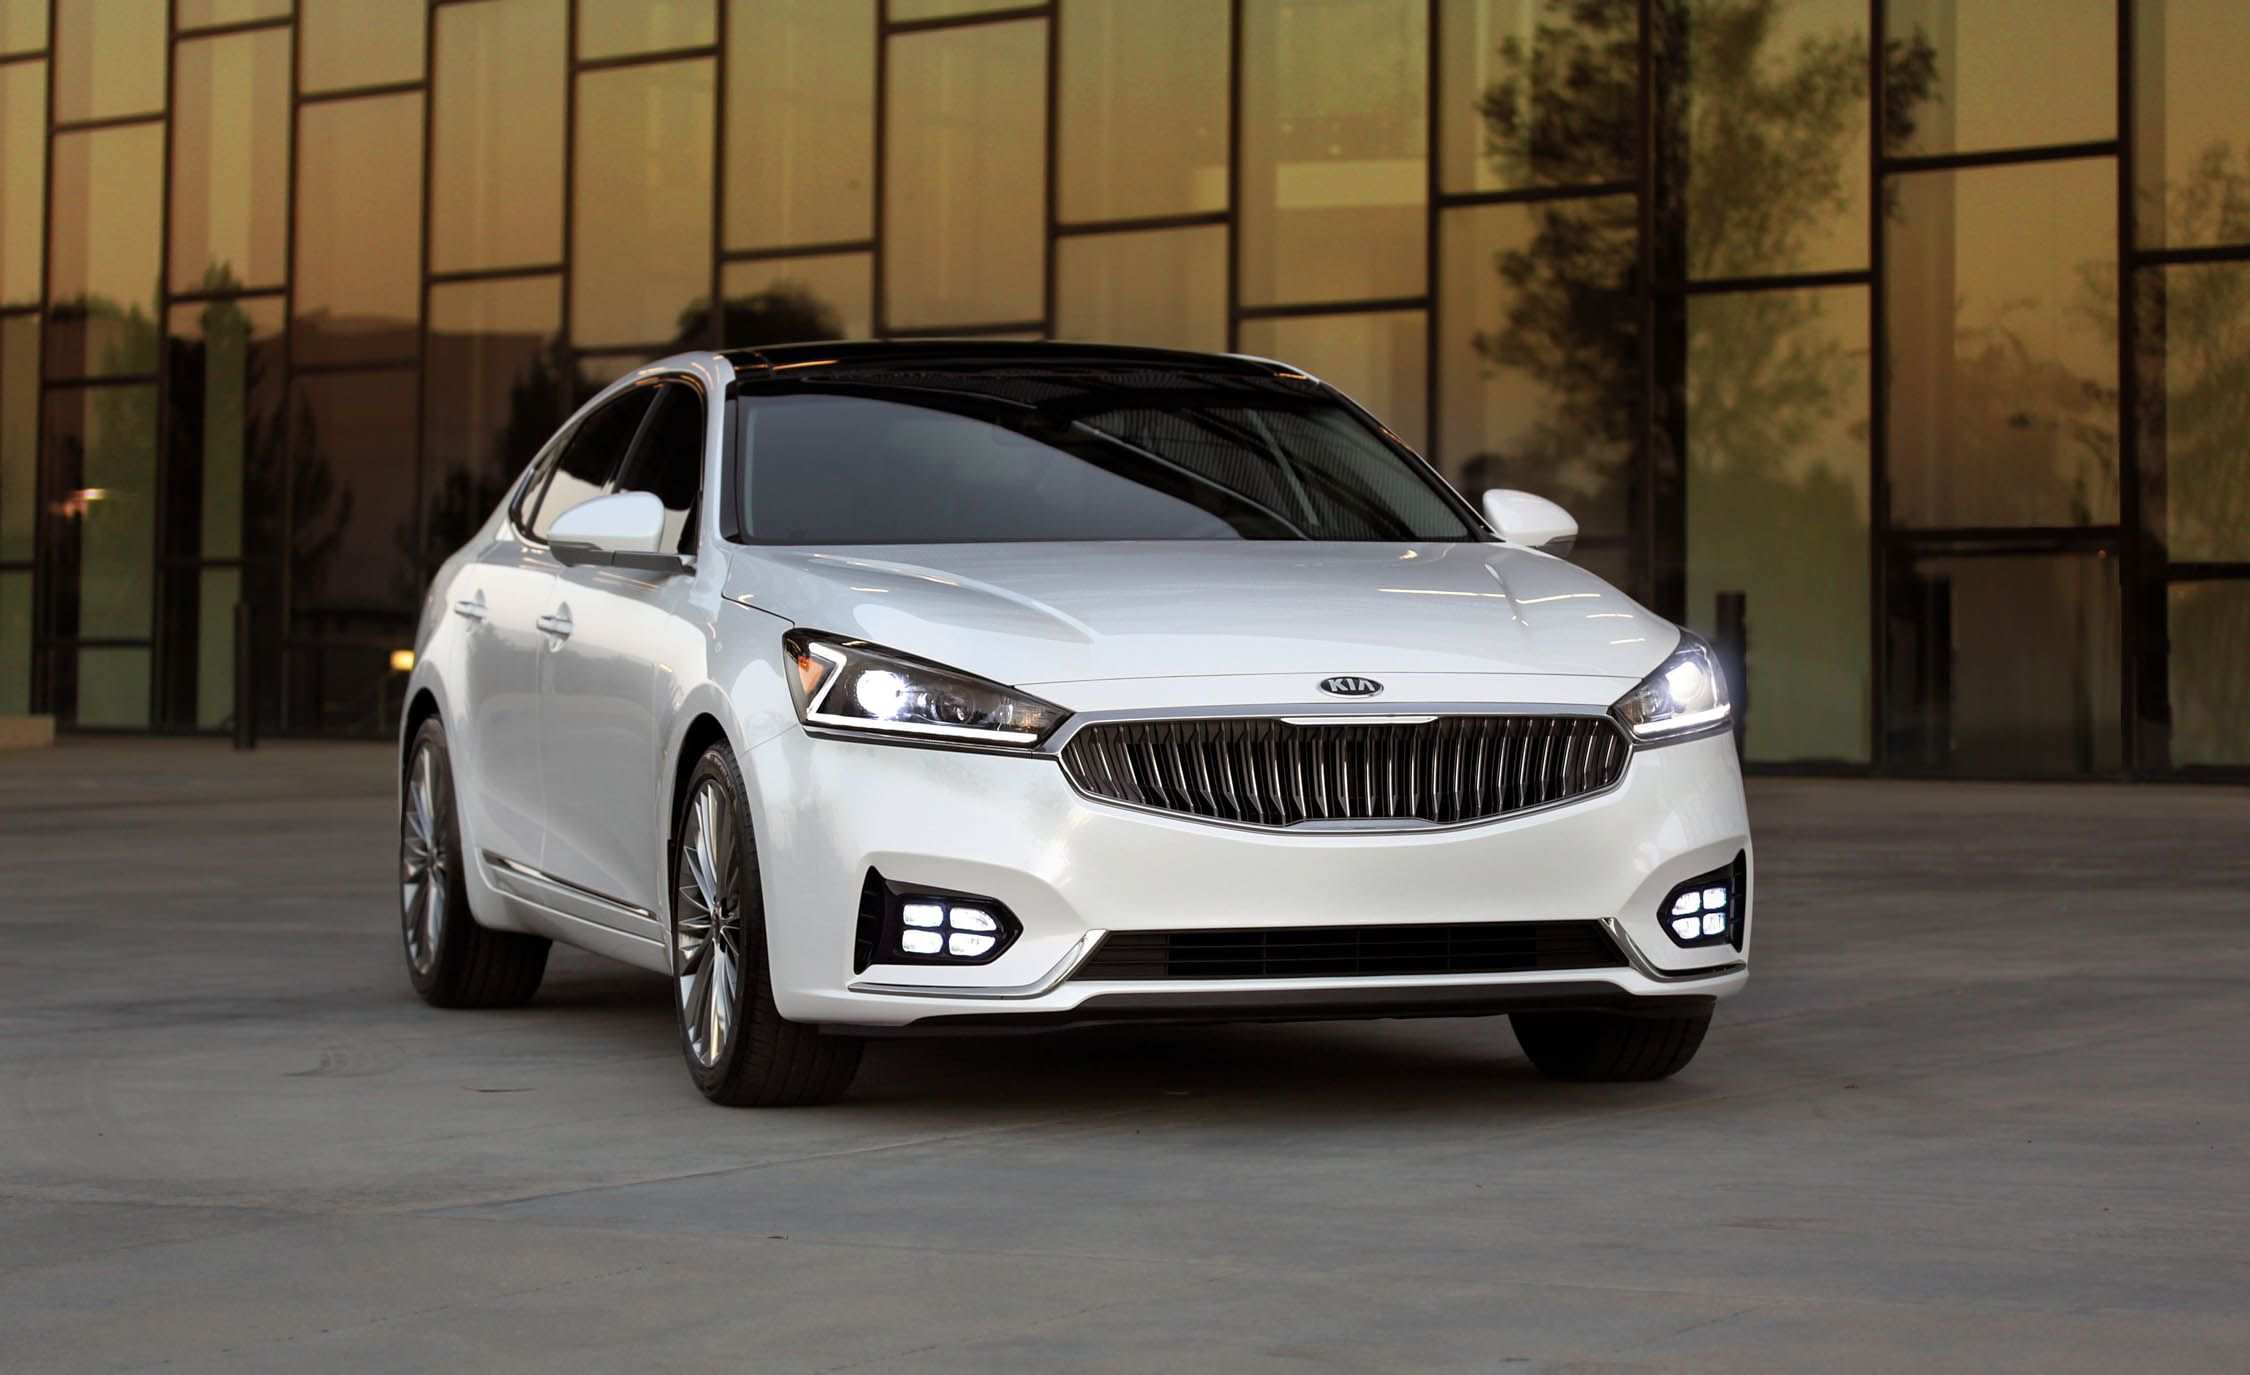 32 Gallery of Best 2019 Kia Cadenza Limited Review New Review with Best 2019 Kia Cadenza Limited Review